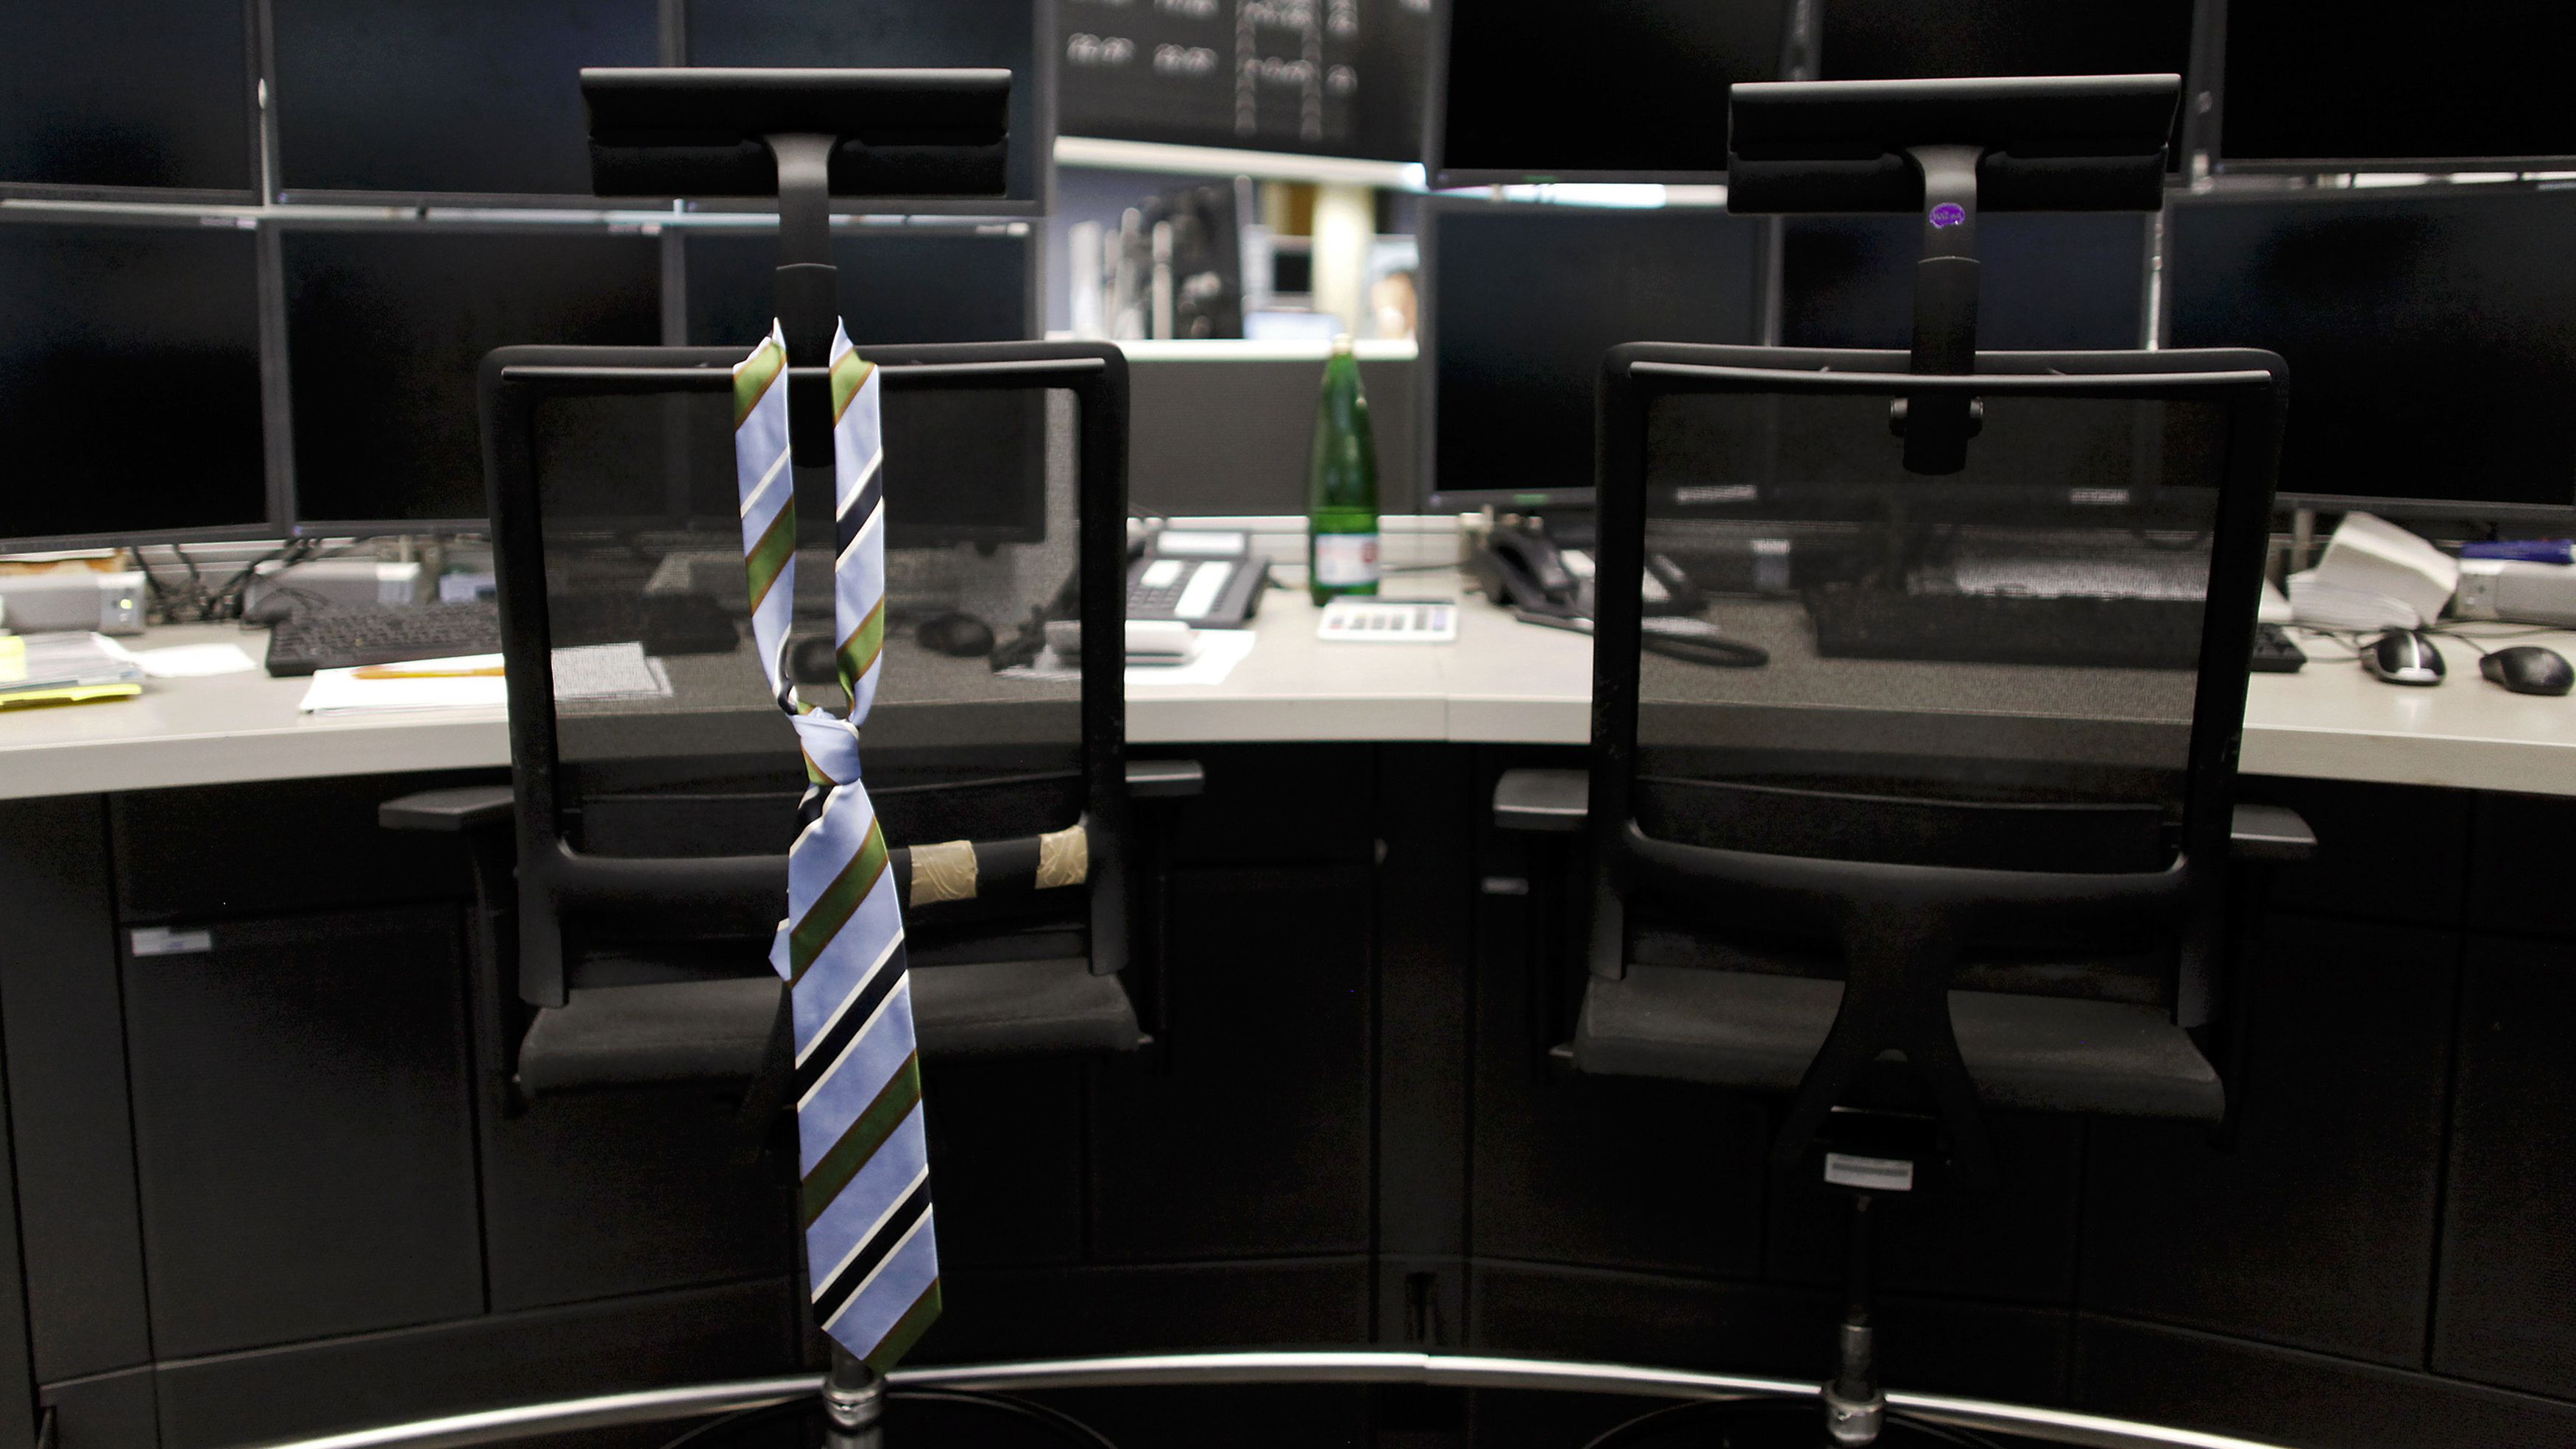 A tie hangs from an empty chair on a trader desk after the end of a trading day at the Frankfurt stock exchange August 12, 2011. REUTERS/Alex Domanski (GERMANY - Tags: BUSINESS IMAGES OF THE DAY)